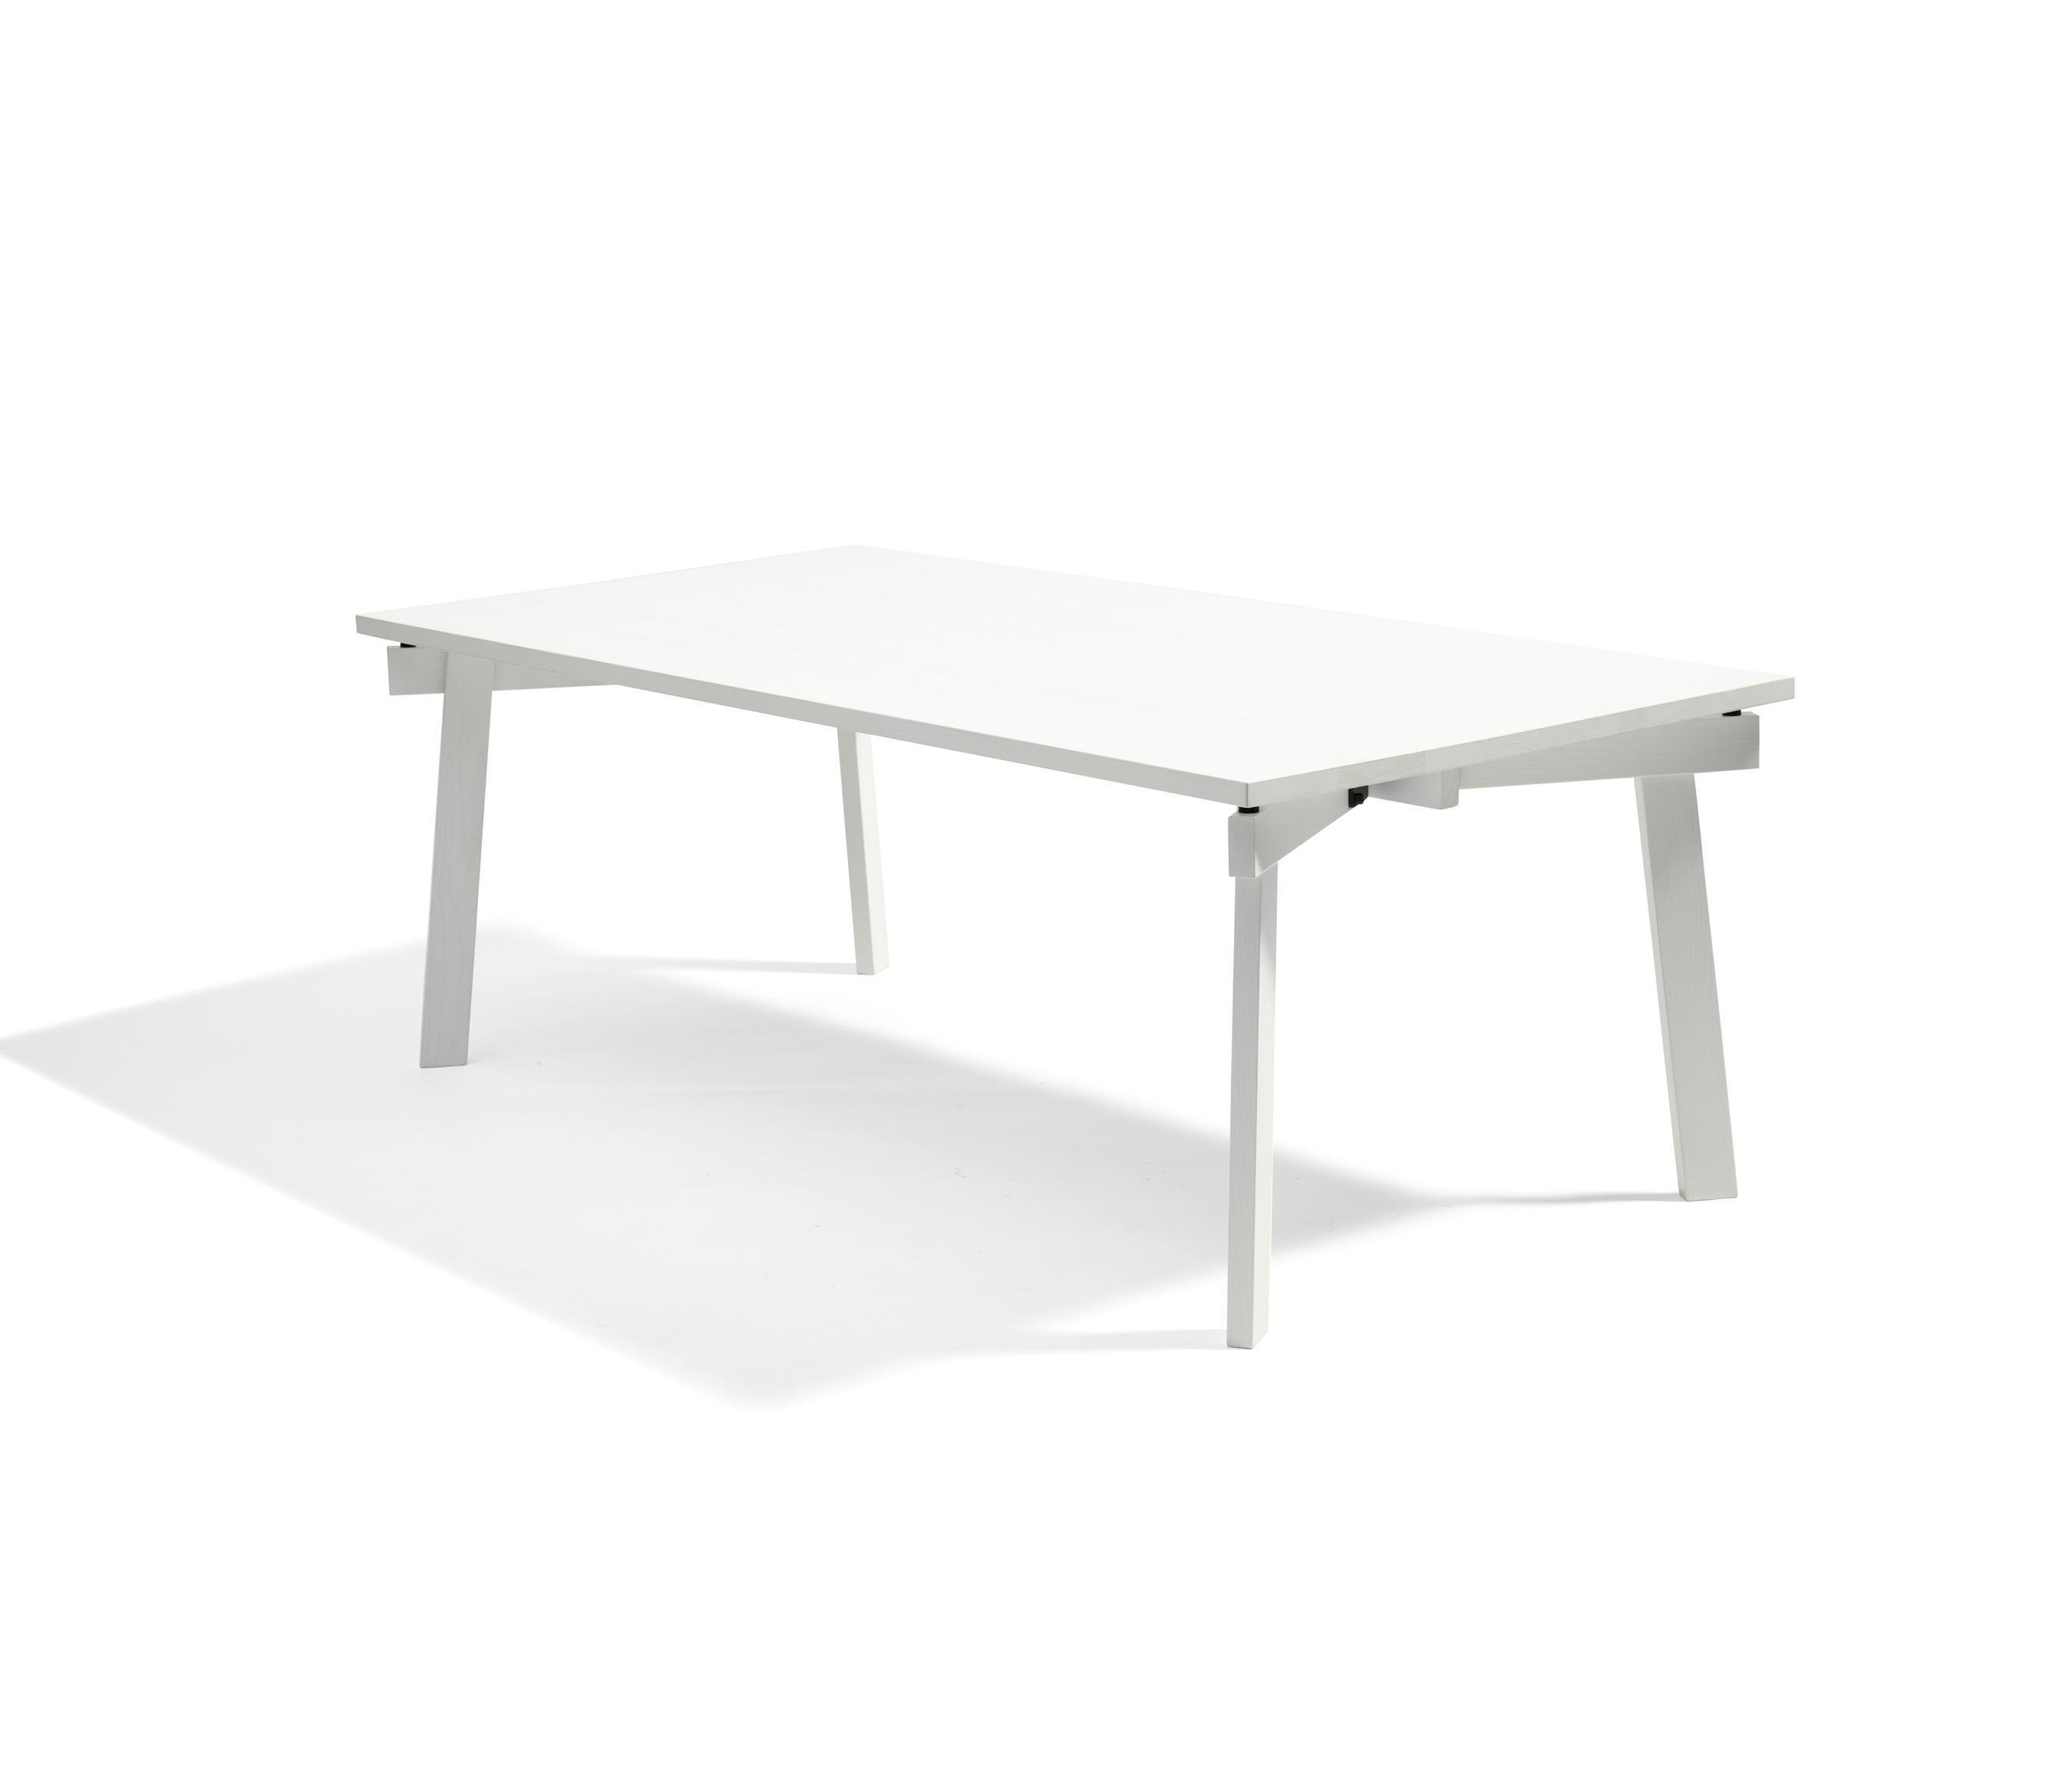 size by bl station canteen tables - Herman Miller Tischsysteme